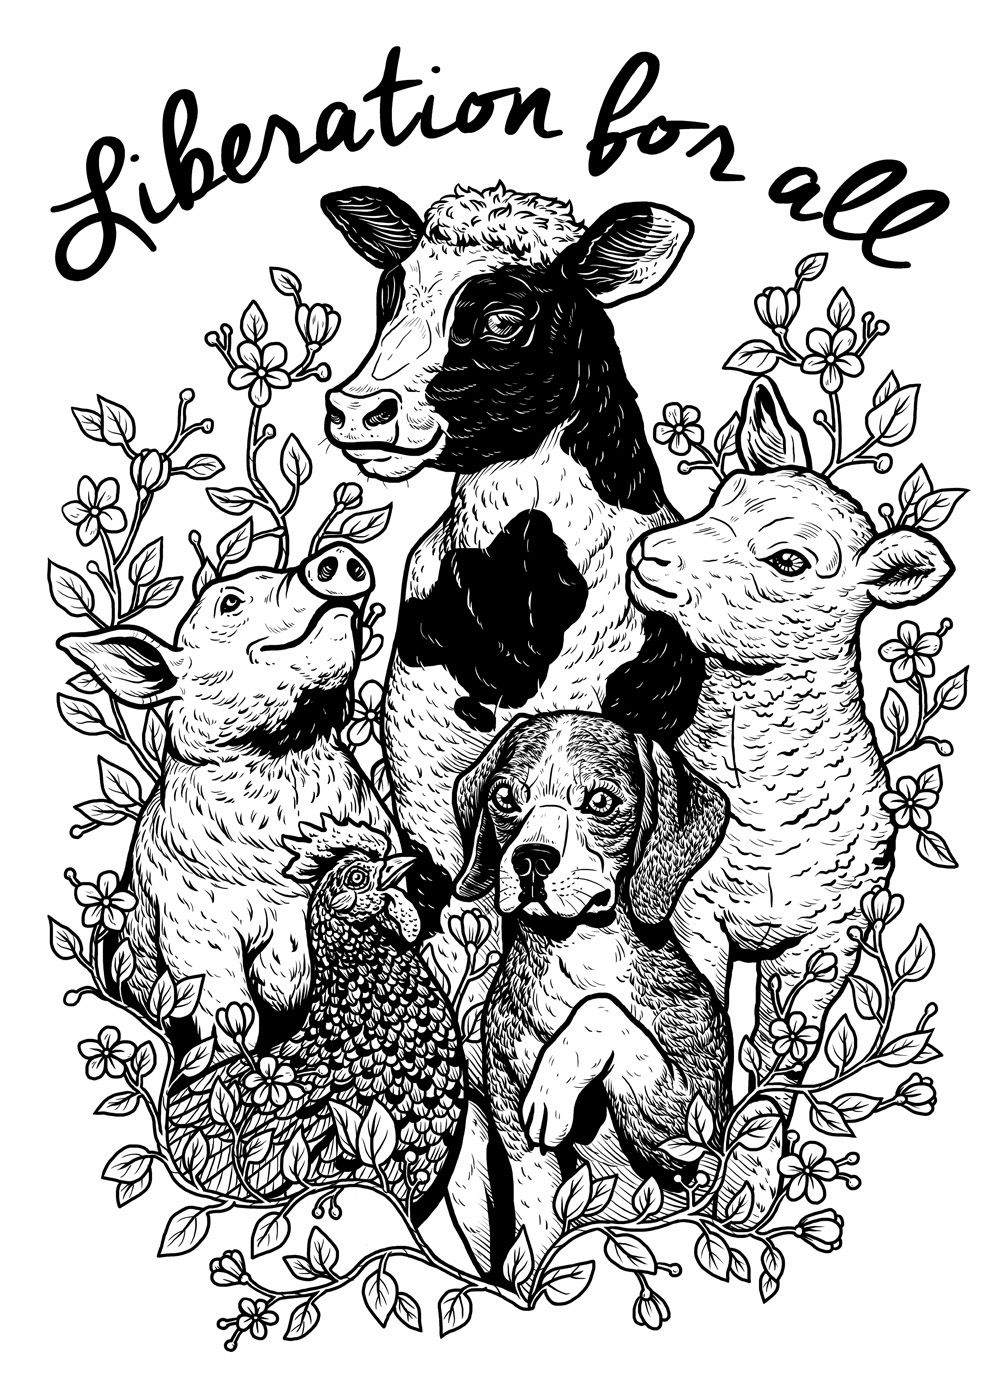 Liberation for all on Behance | Animal activism, Dog illustration art,  Animals